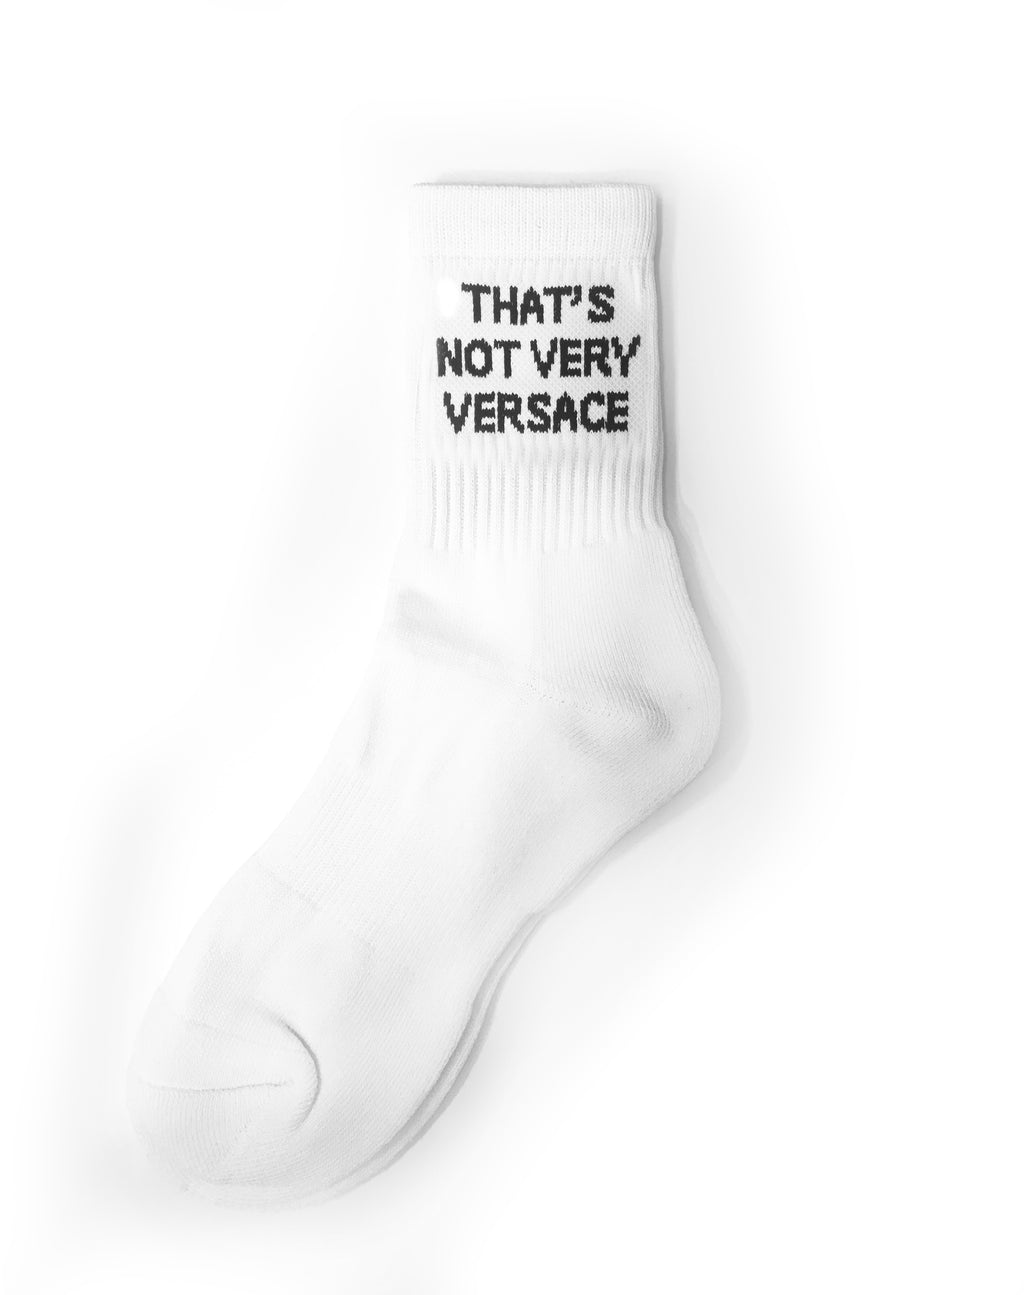 PAUSE 'That's Not Very Versace' Socks